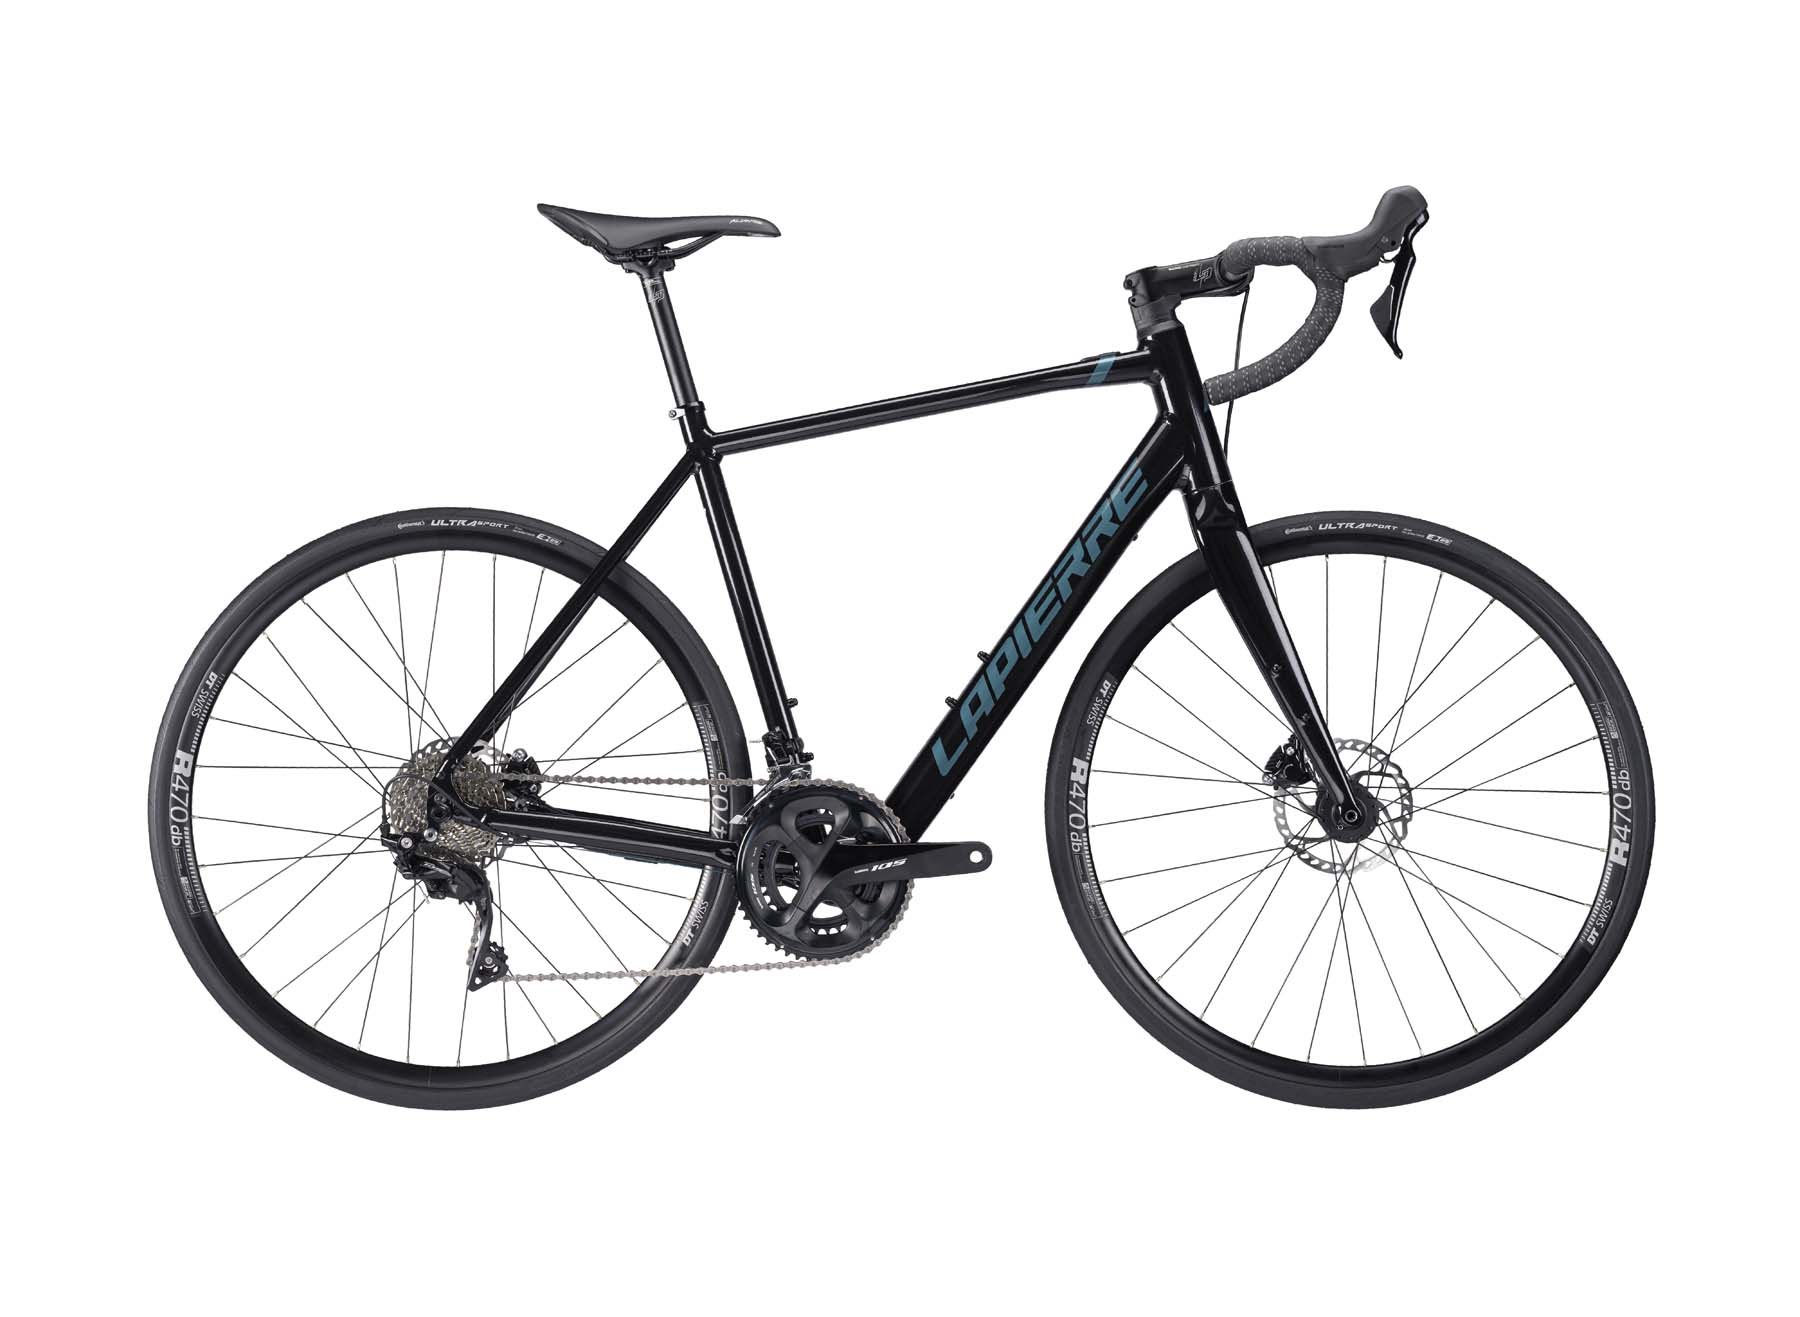 Lapierre eSensium 5.2 2021 Road Bike with Electric Assist 1